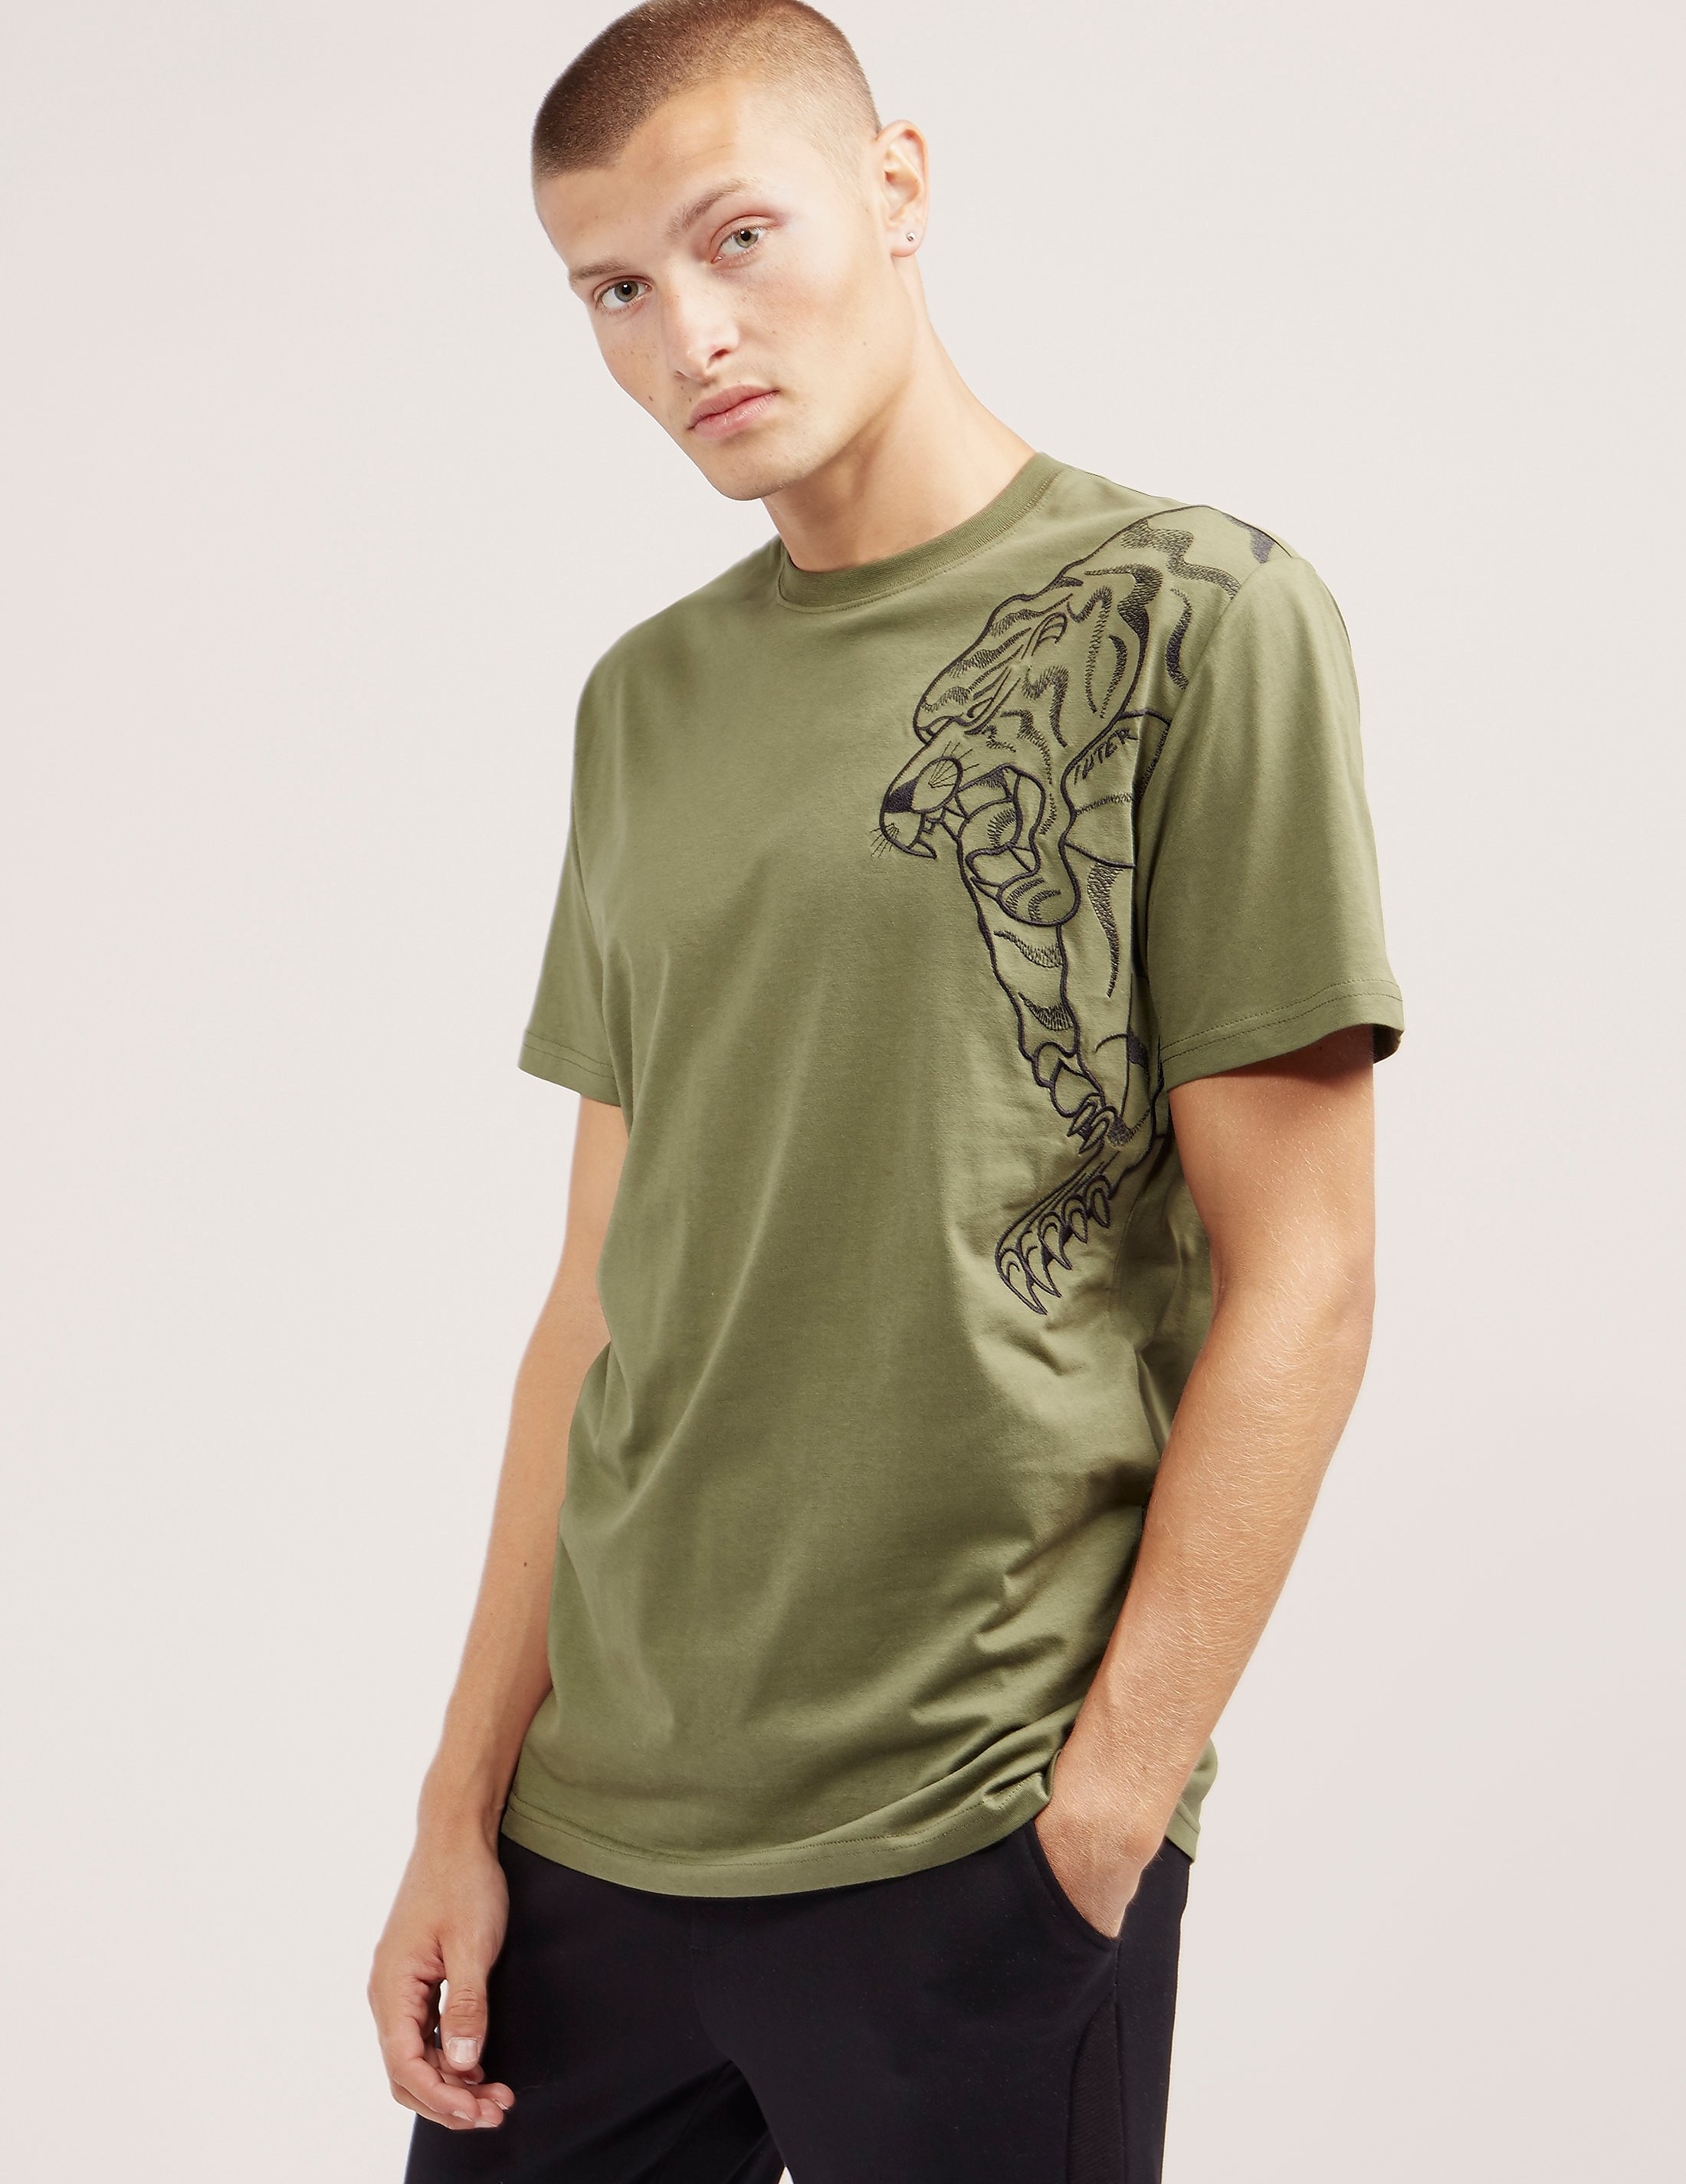 IUTER Nepal Short Sleeve T-Shirt - Exclusive